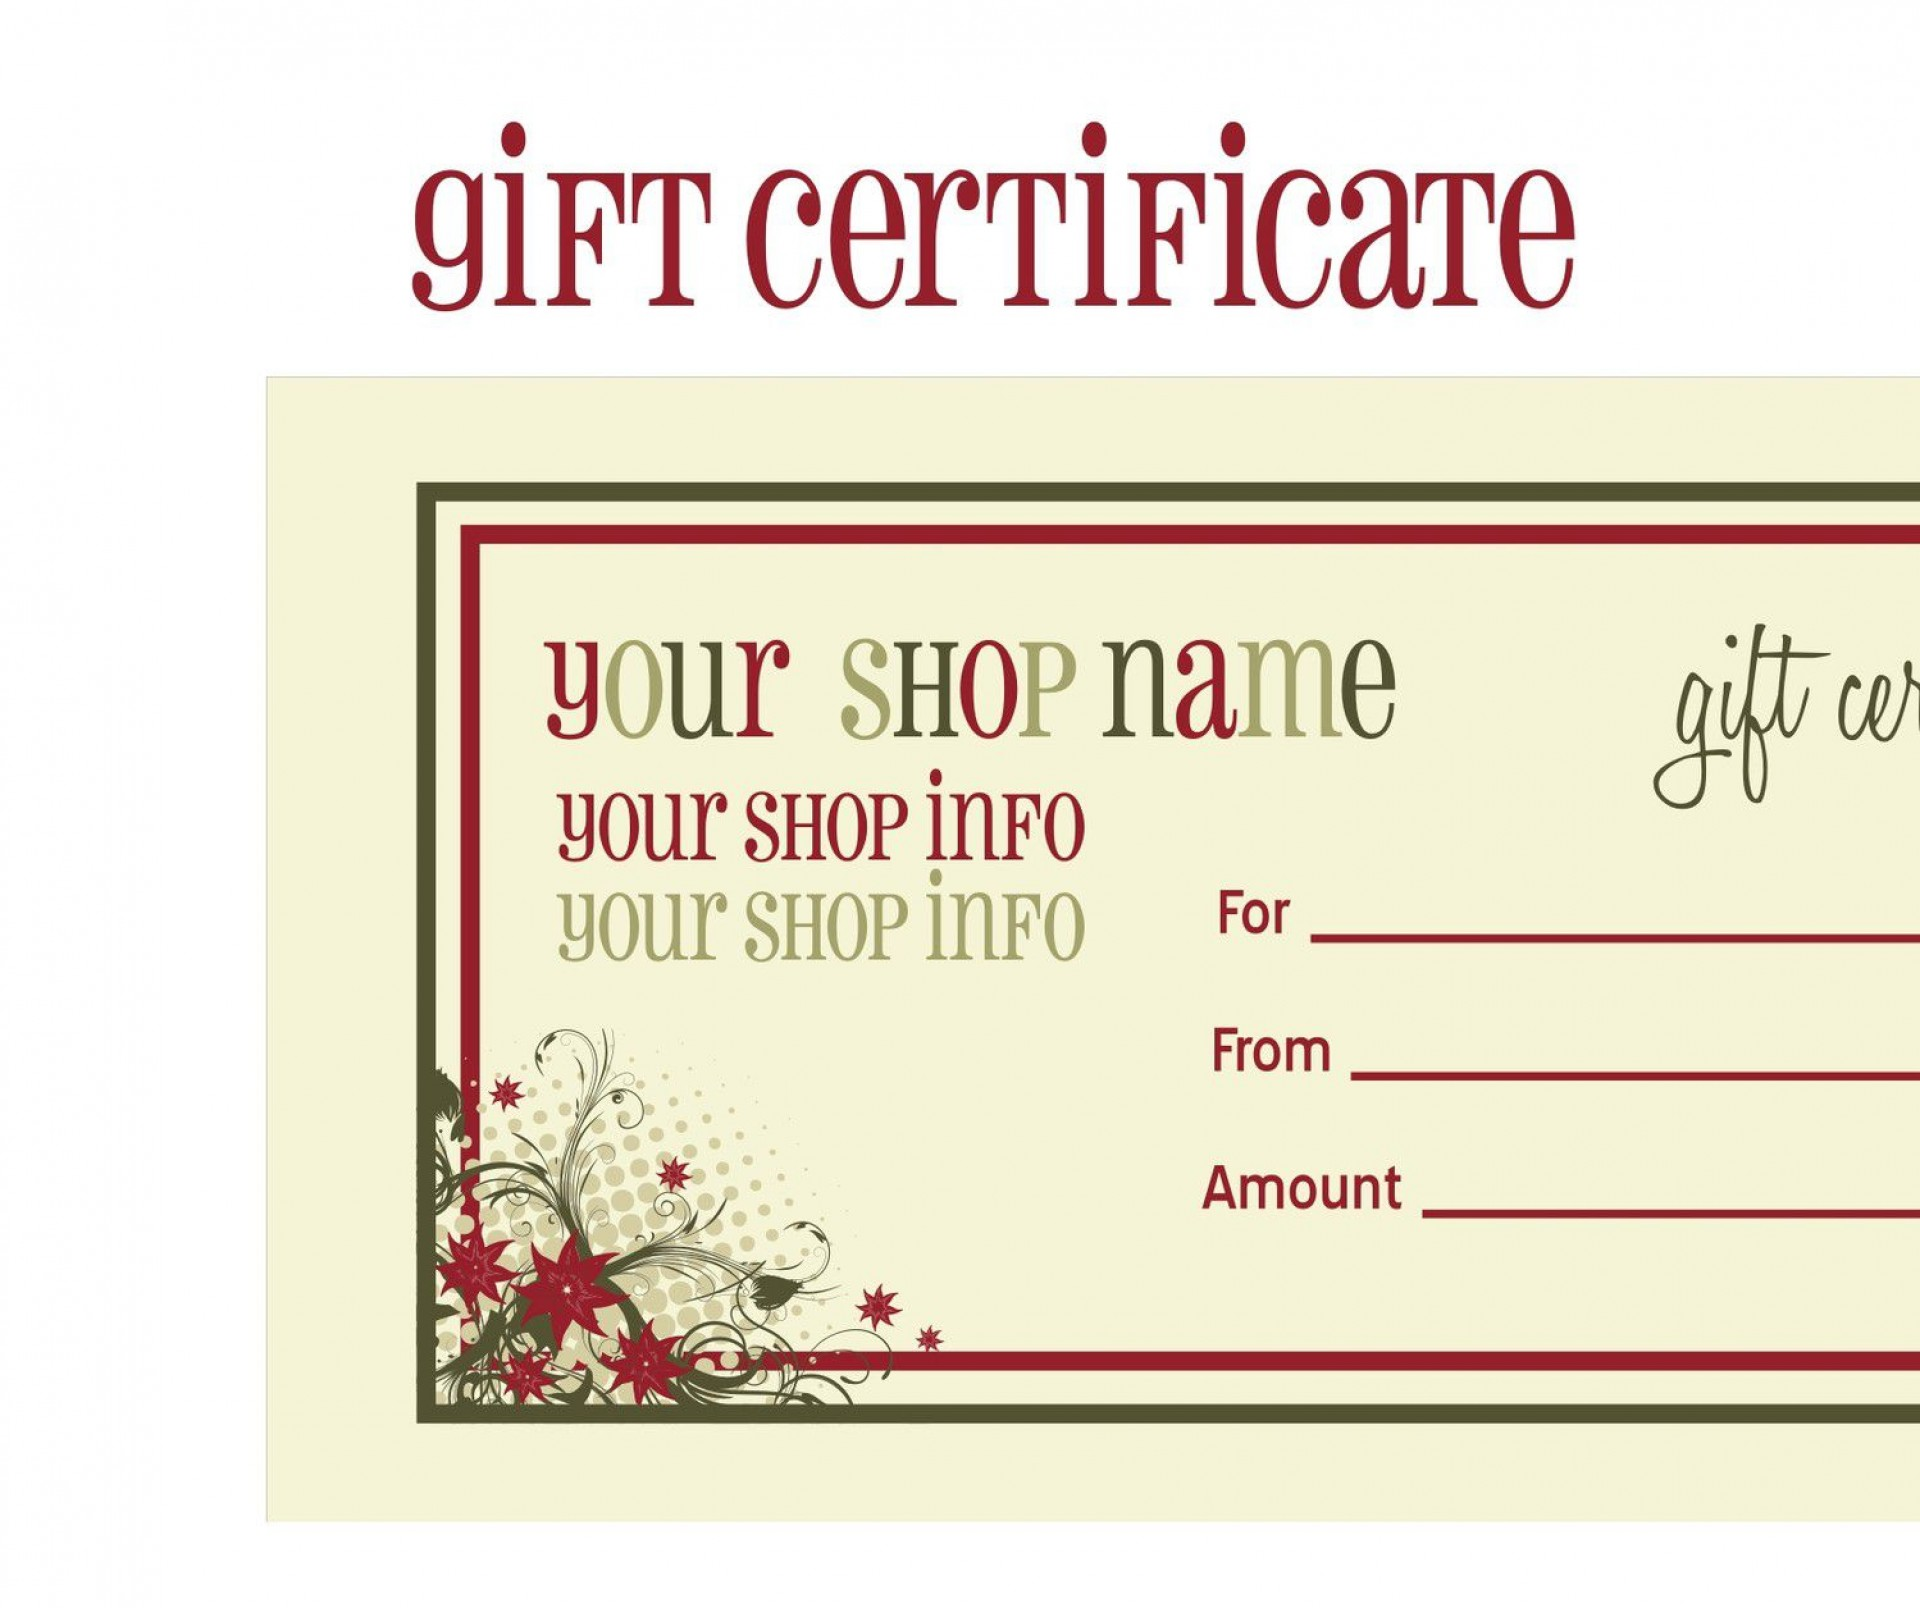 009 Surprising Free Printable Template For Gift Certificate Inspiration  Voucher1920